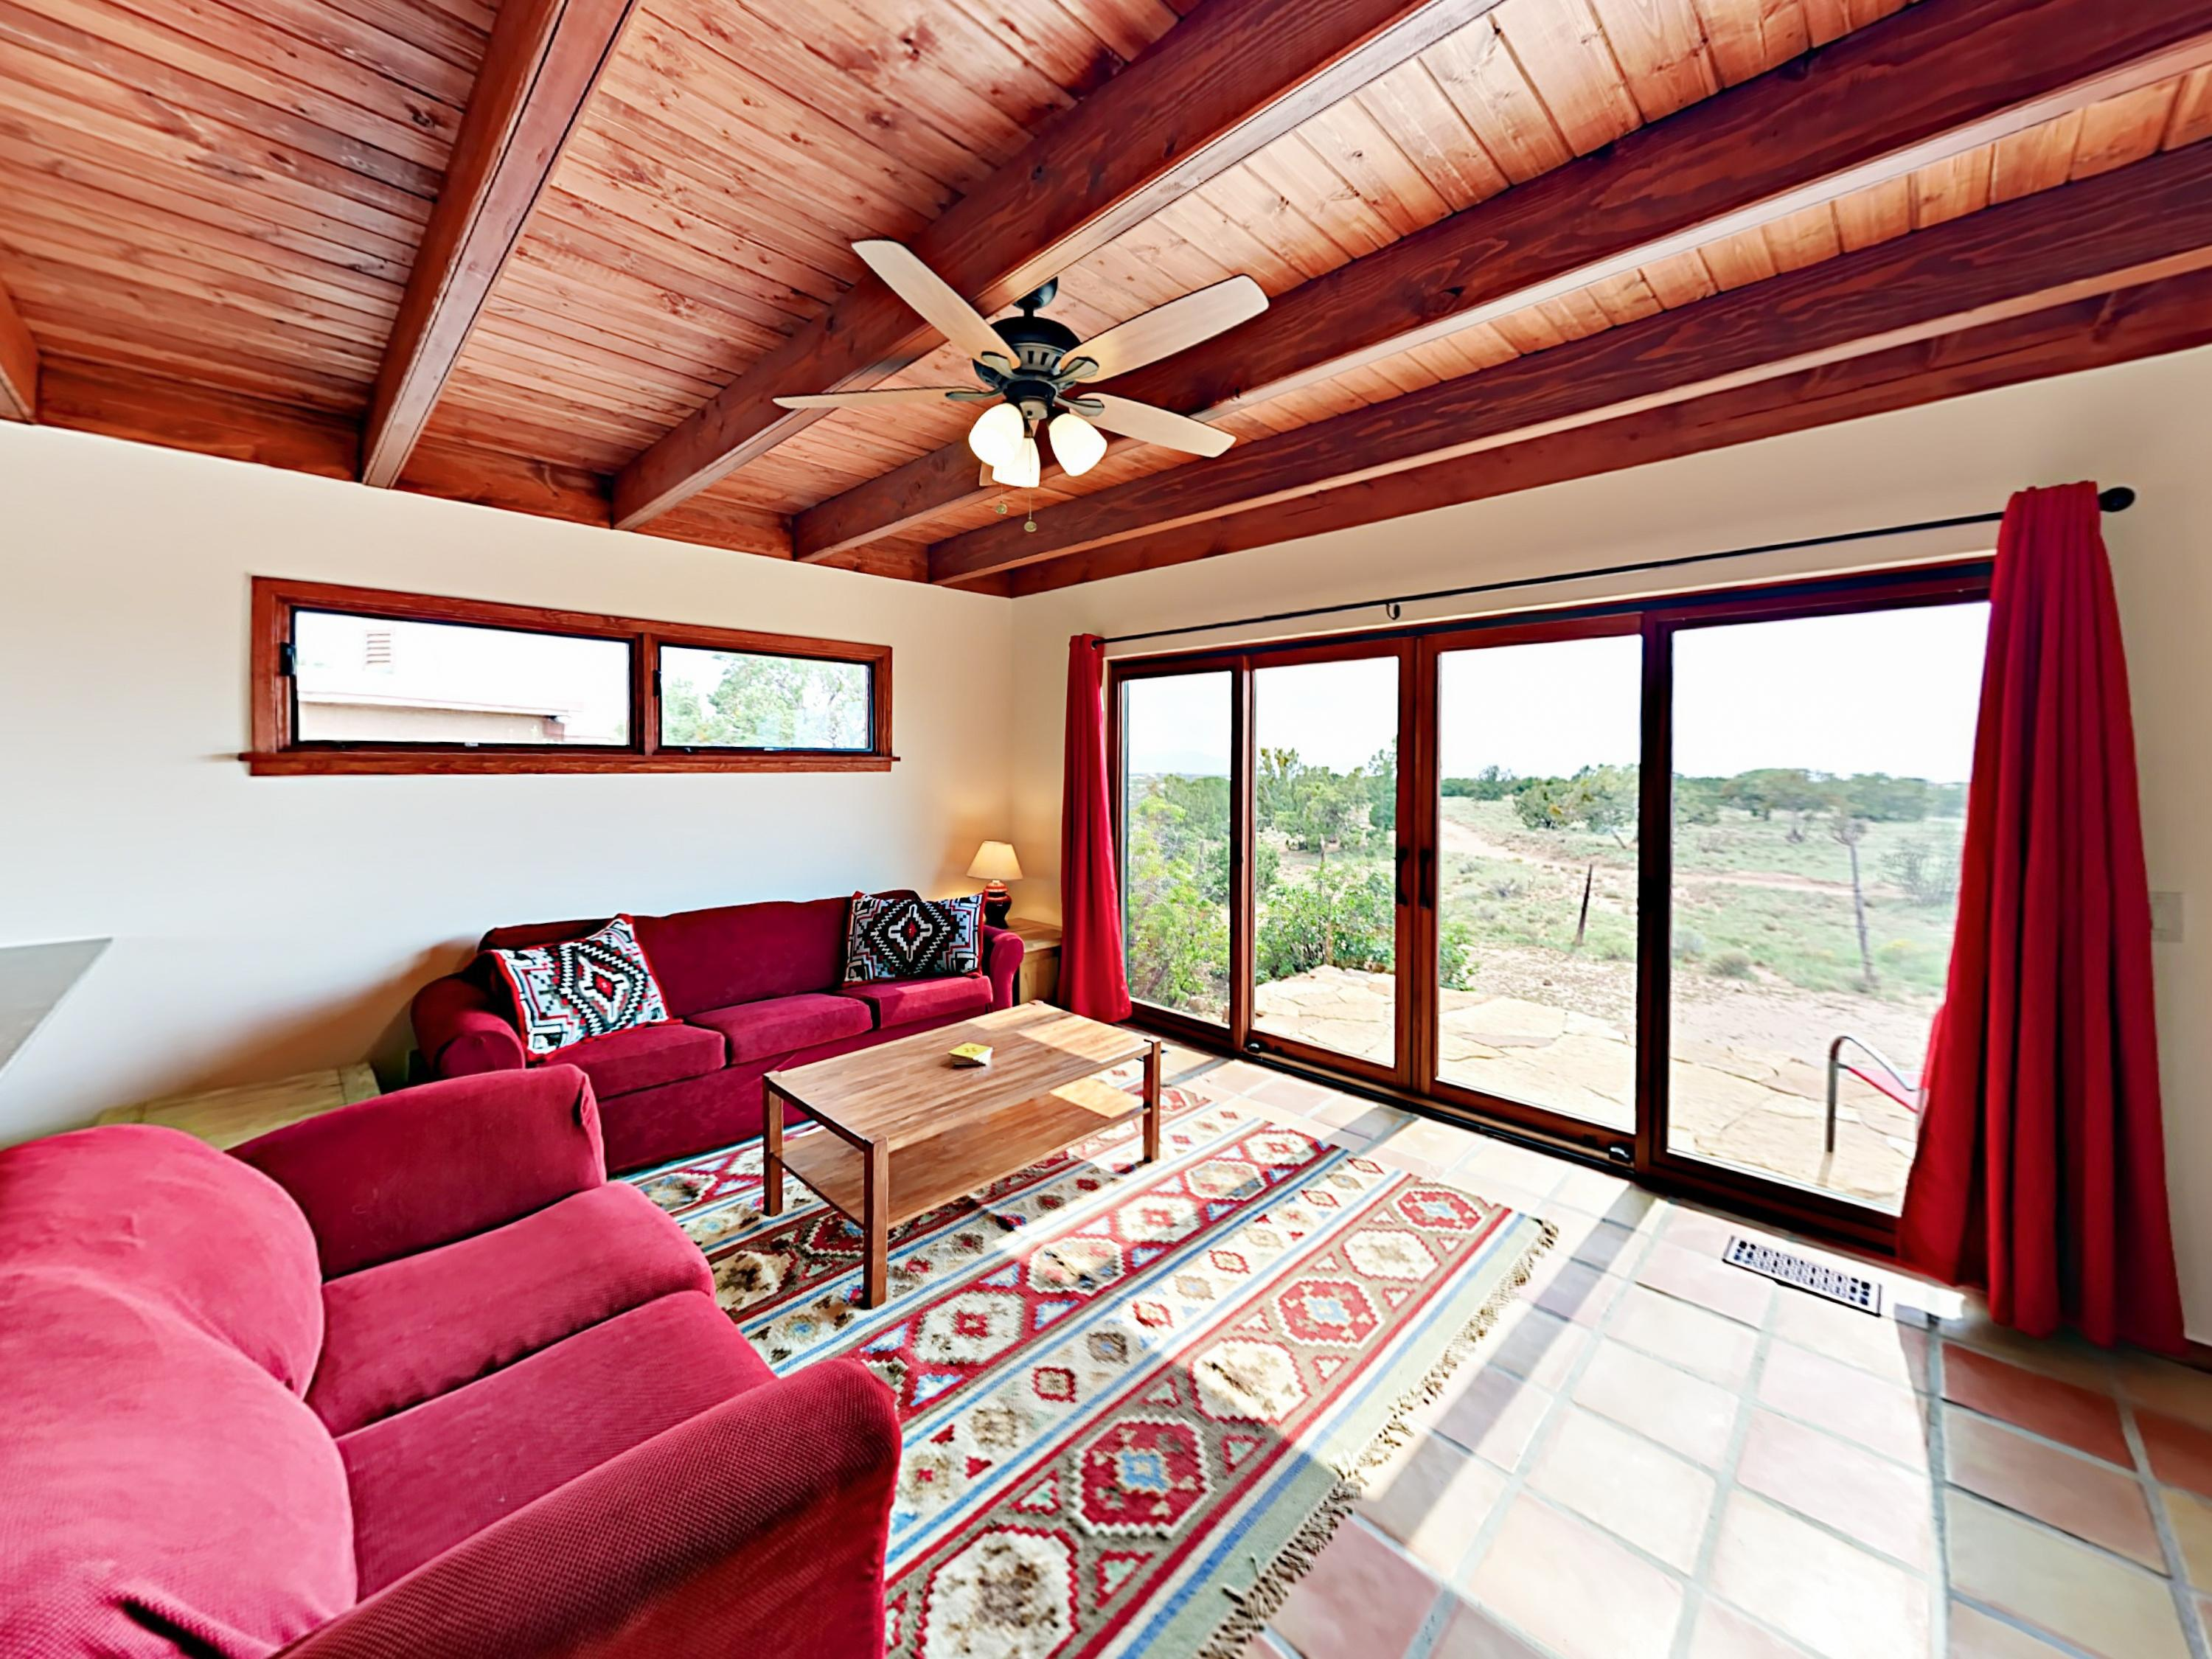 Beautiful Saltillo tiled floors, exposed-beam ceilings, and rich red hues give this Santa Fe home a distinct Southwestern feel.